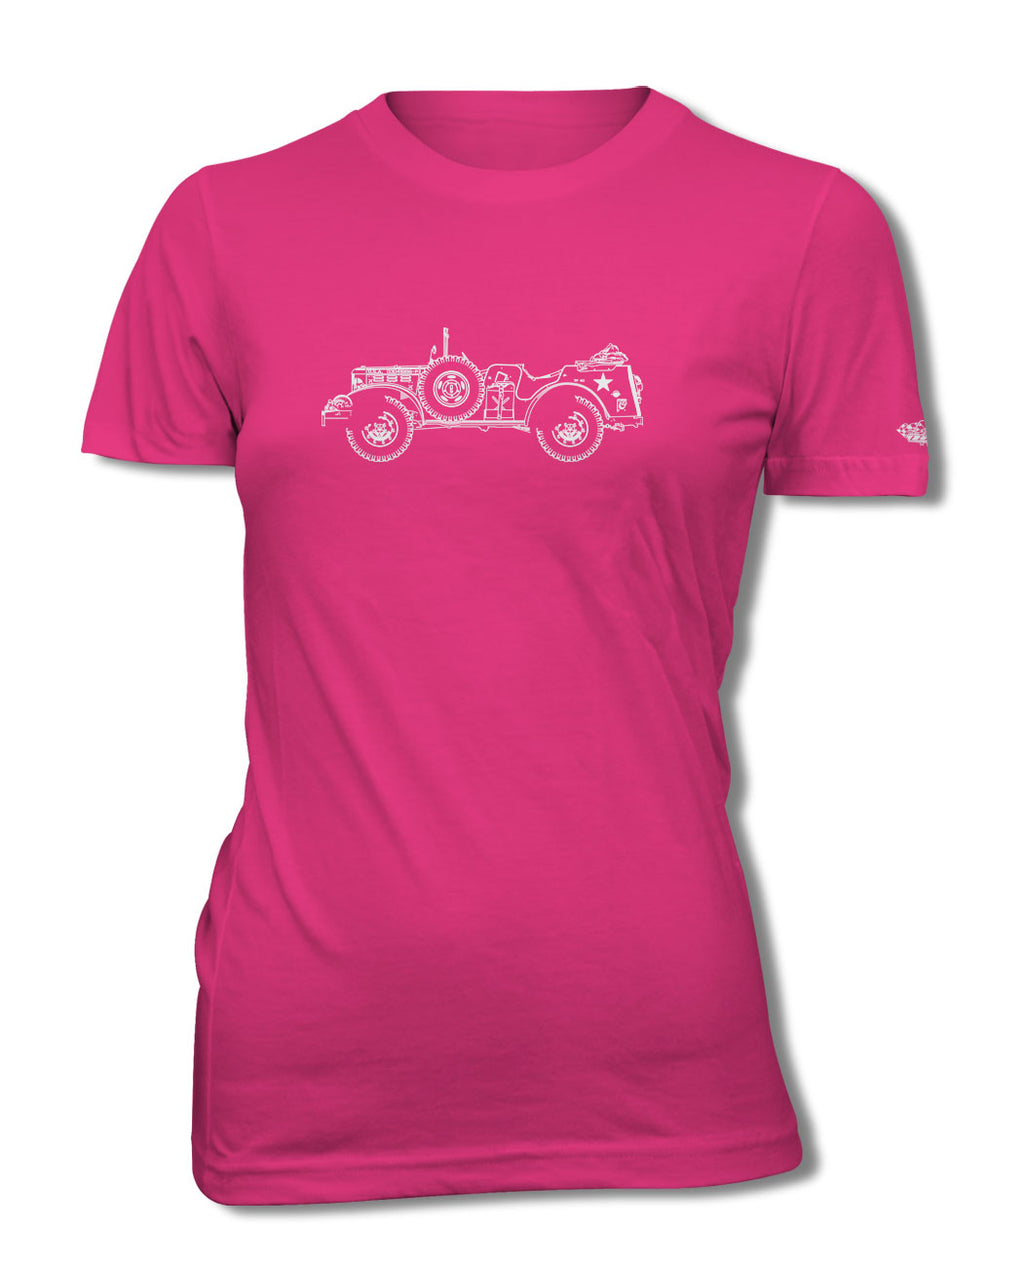 1944 Dodge WC-56 WC-57 Weapons Carrier WWII T-Shirt - Women - Side View